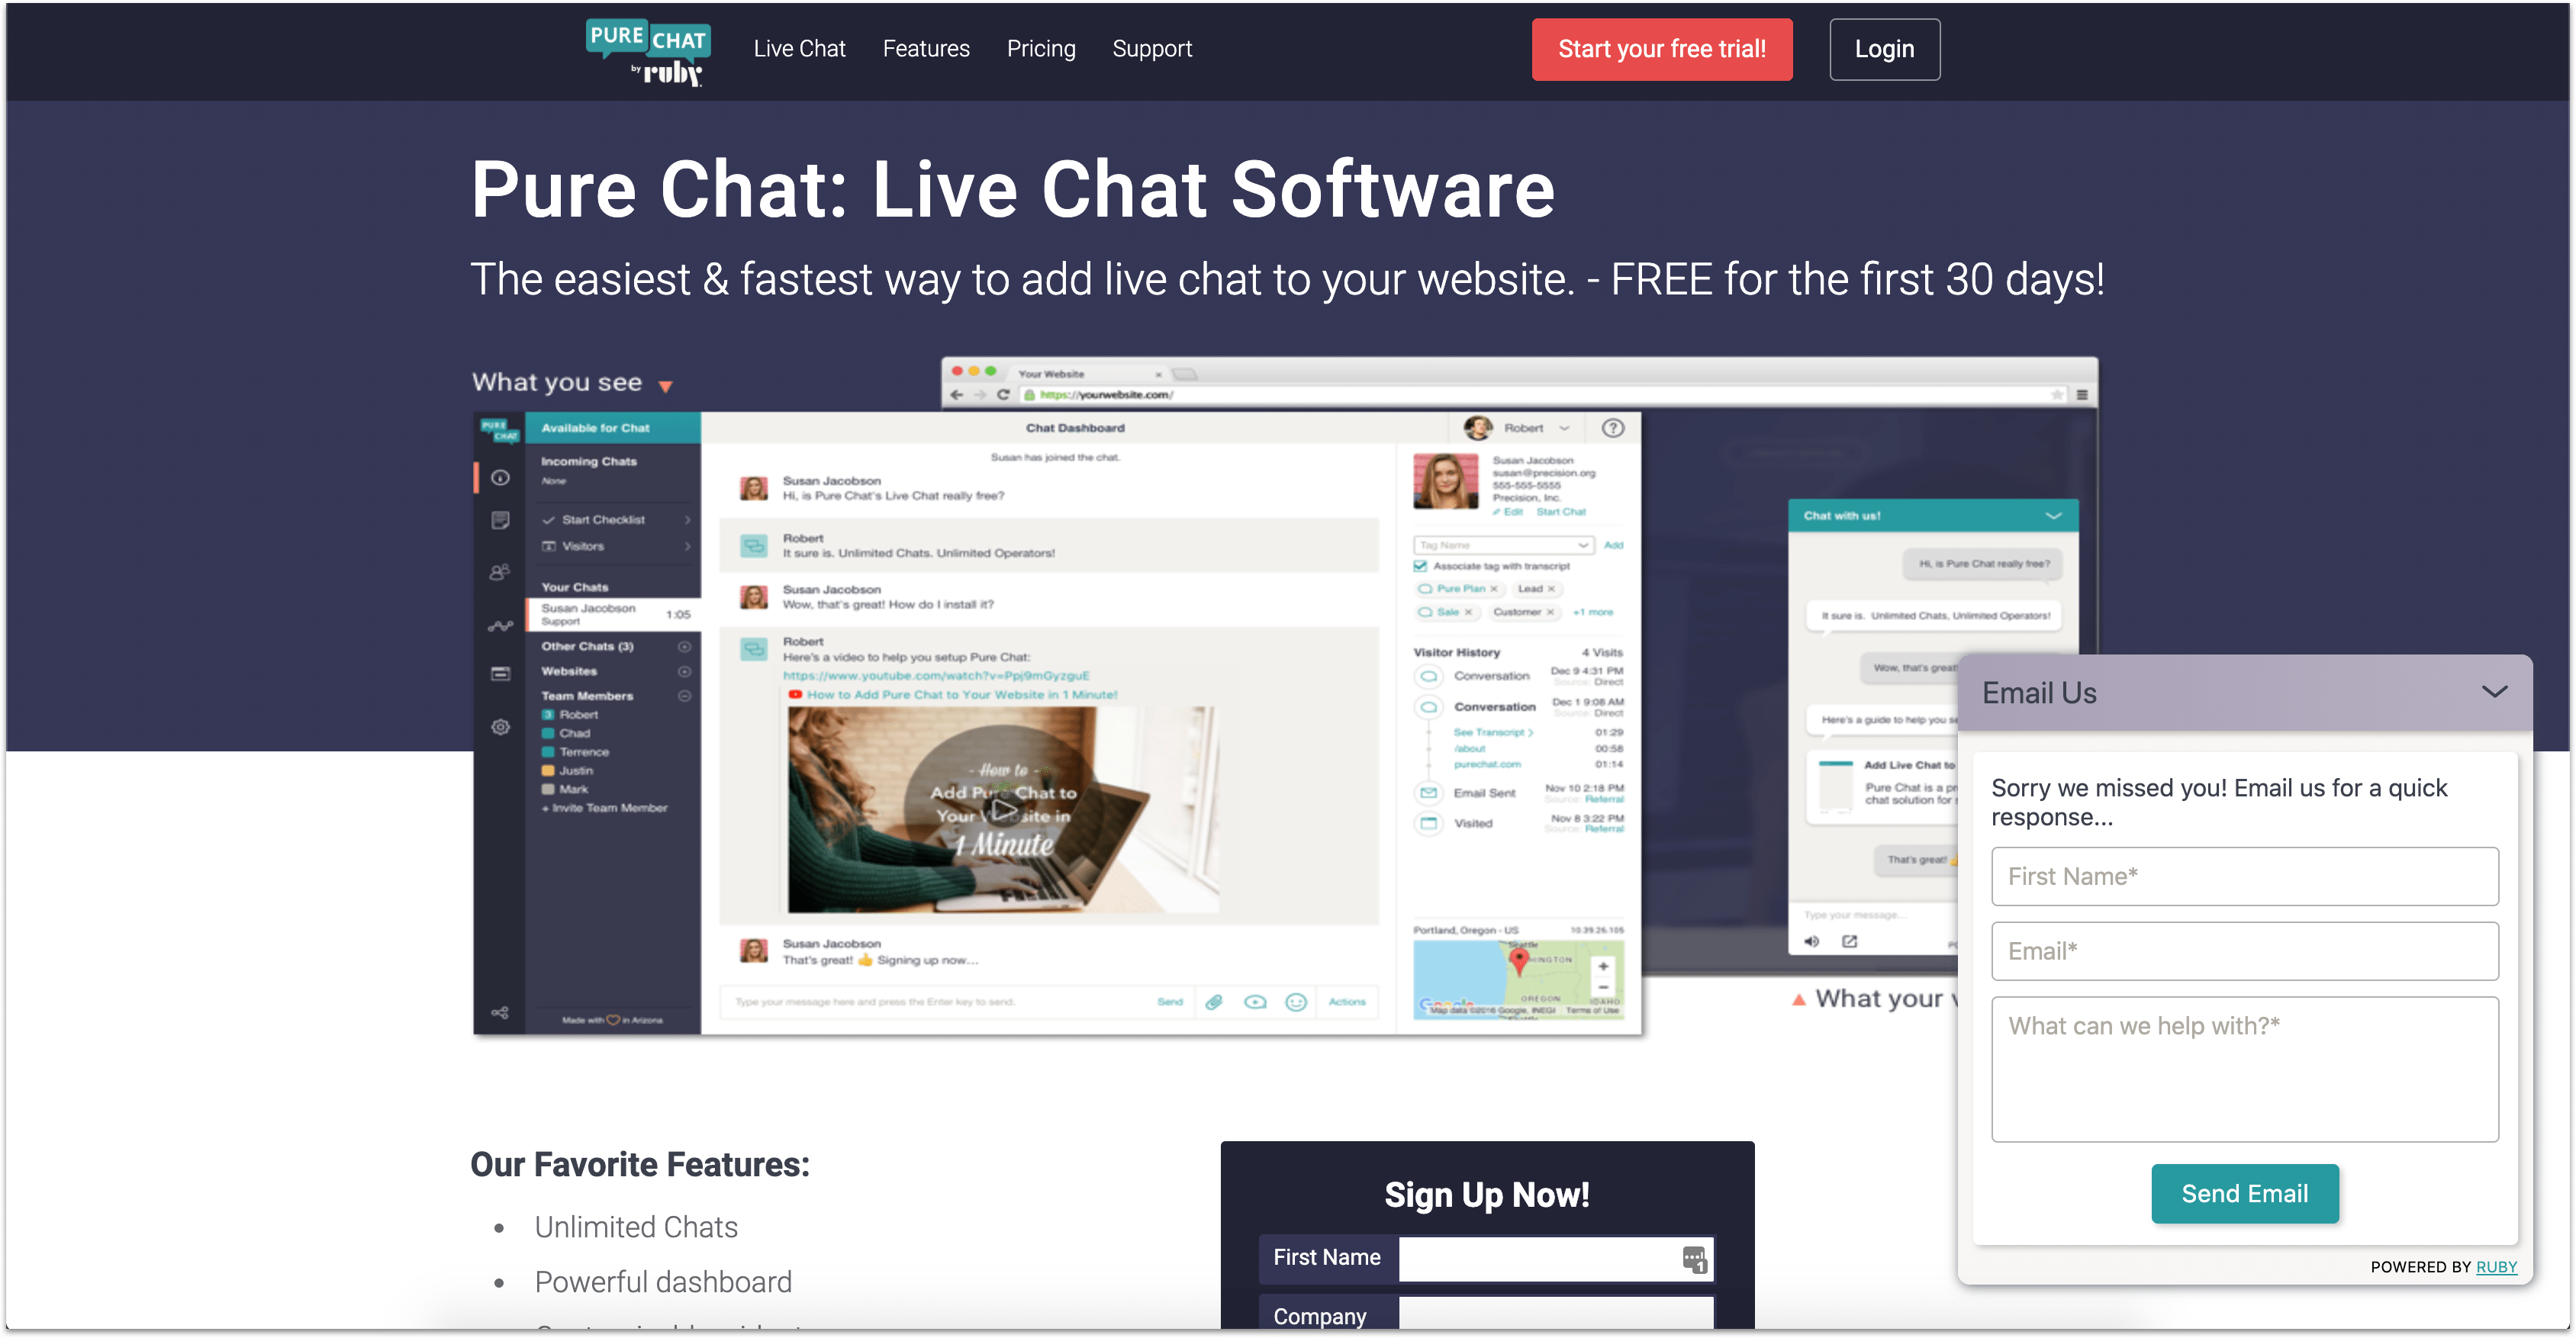 Pure Chat support app homepage with live chat